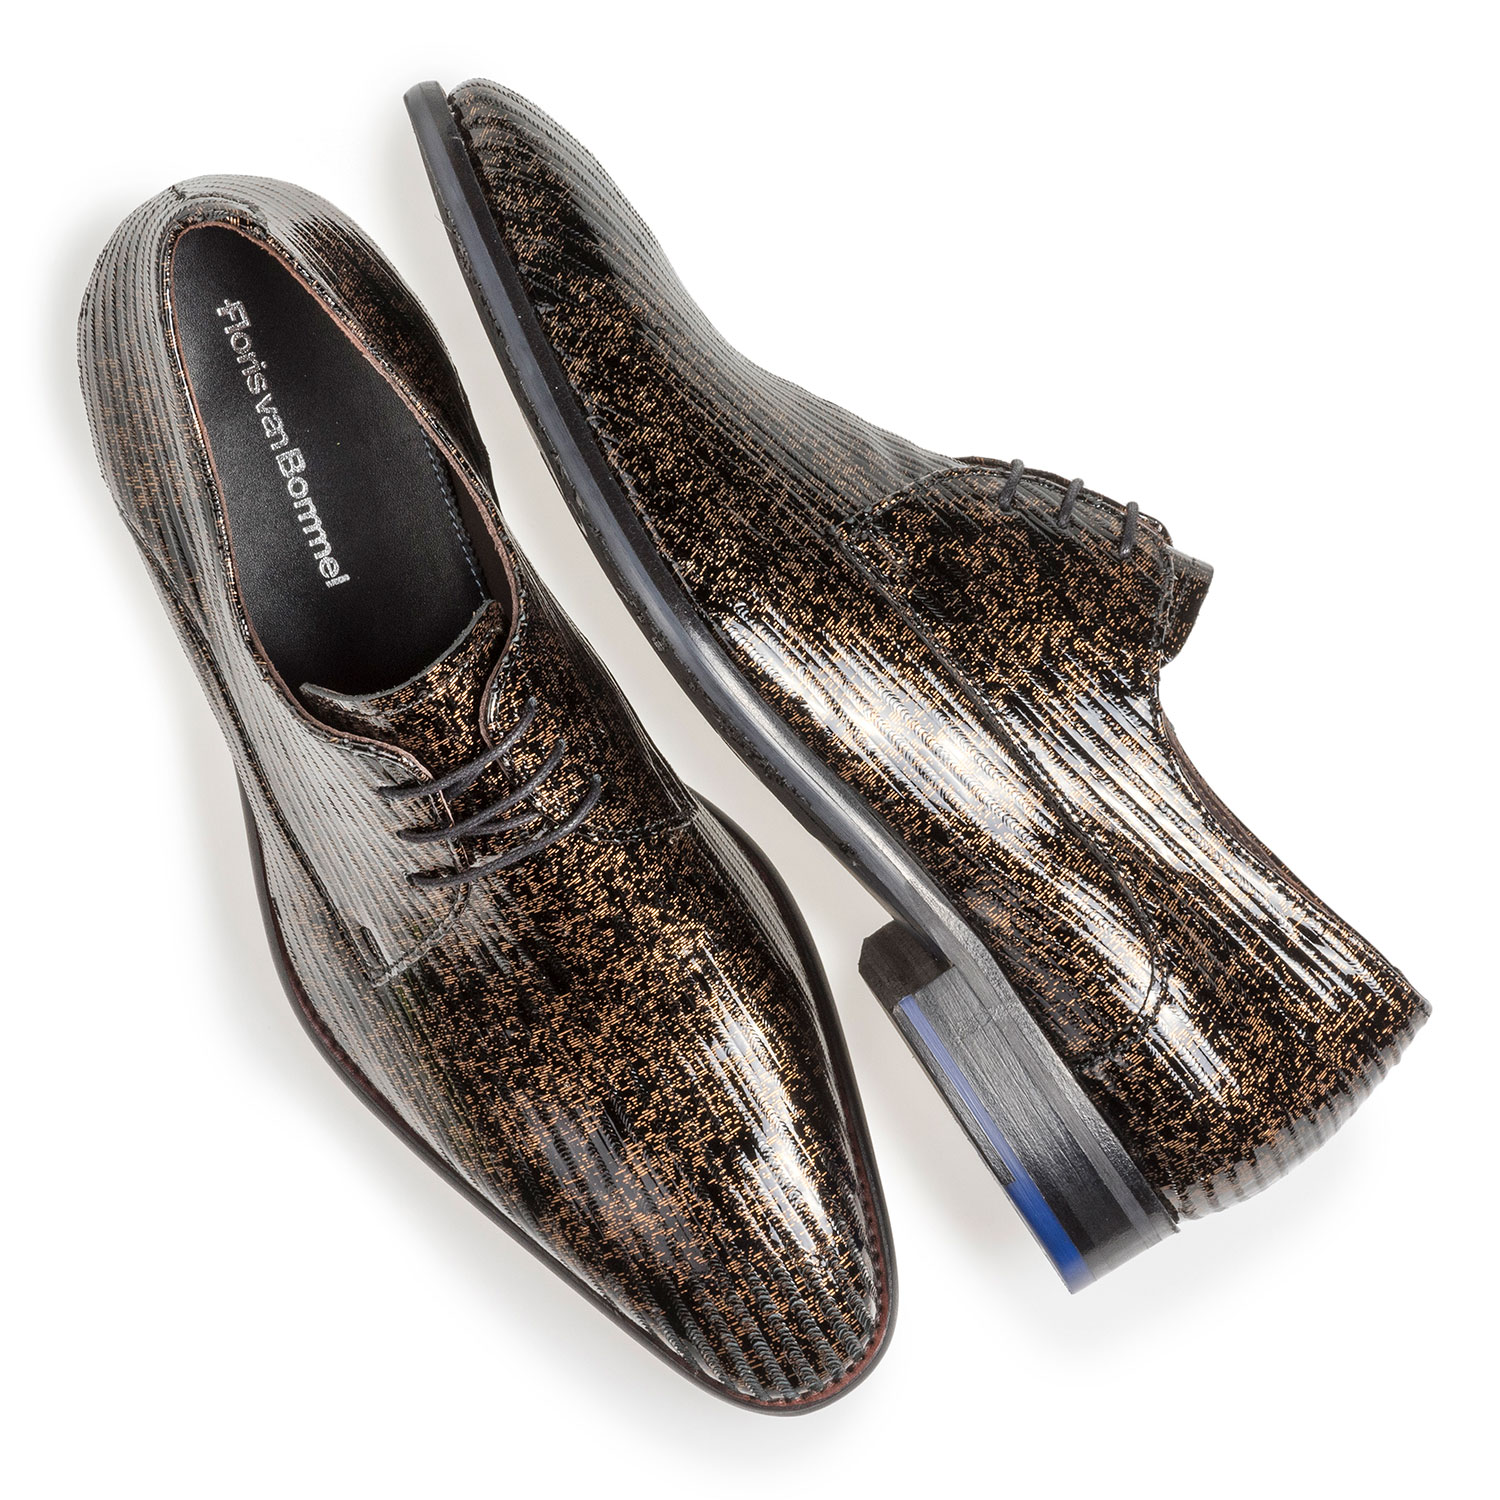 18146/11 - Brown patent leather lace shoe with metallic print